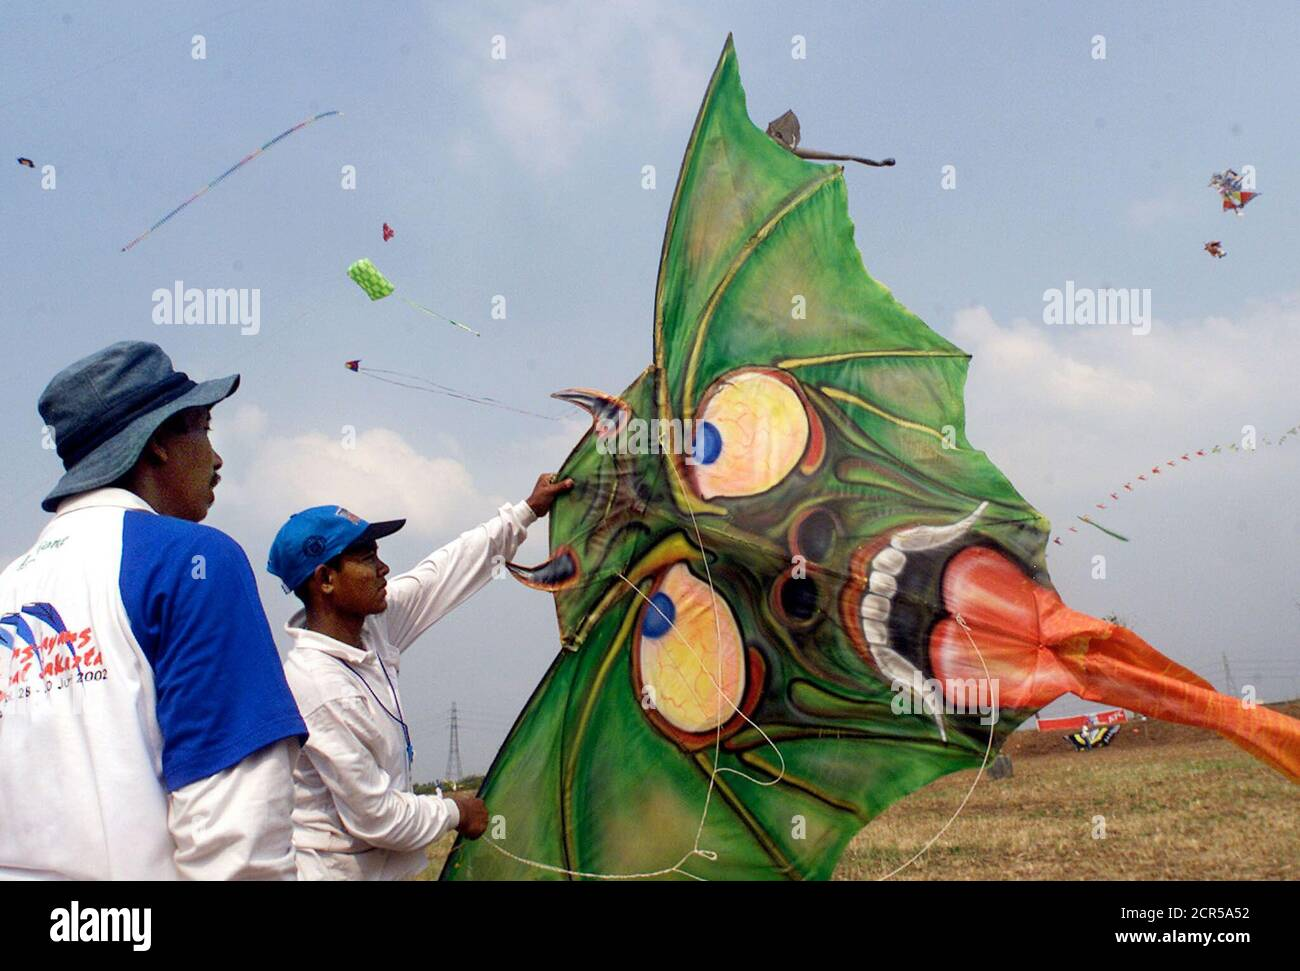 Indonesian participants prepare to fly a kite shaped like a monster's face in Jakarta June 30, 2002. The men are among dozens of international participants at Jakarta's international Kite festival. Eleven countries and dozens of provinces in Indonesia will take part in the three-day festival. REUTERS/Supri  AS Stock Photo